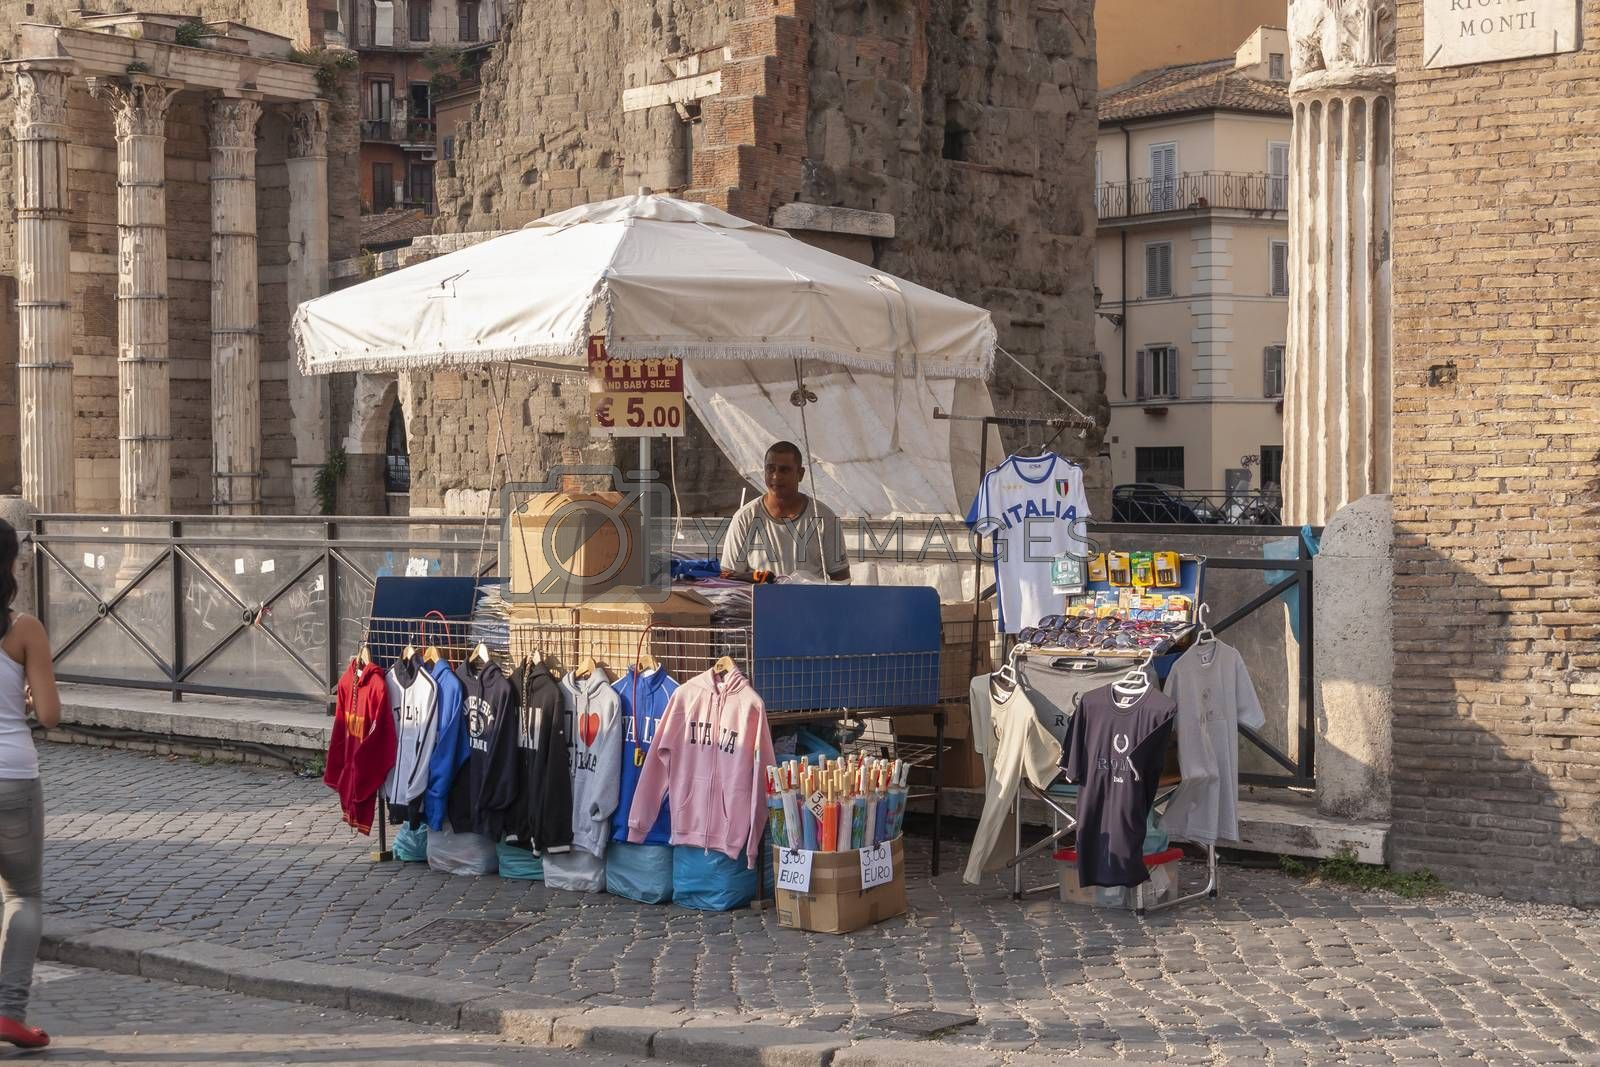 Rome, Italy - June 27, 2010: A man sells T-shirts, sweatshirts and souvenirs to the tourists at his street stall, in the Forum of Augustus area, Rome.